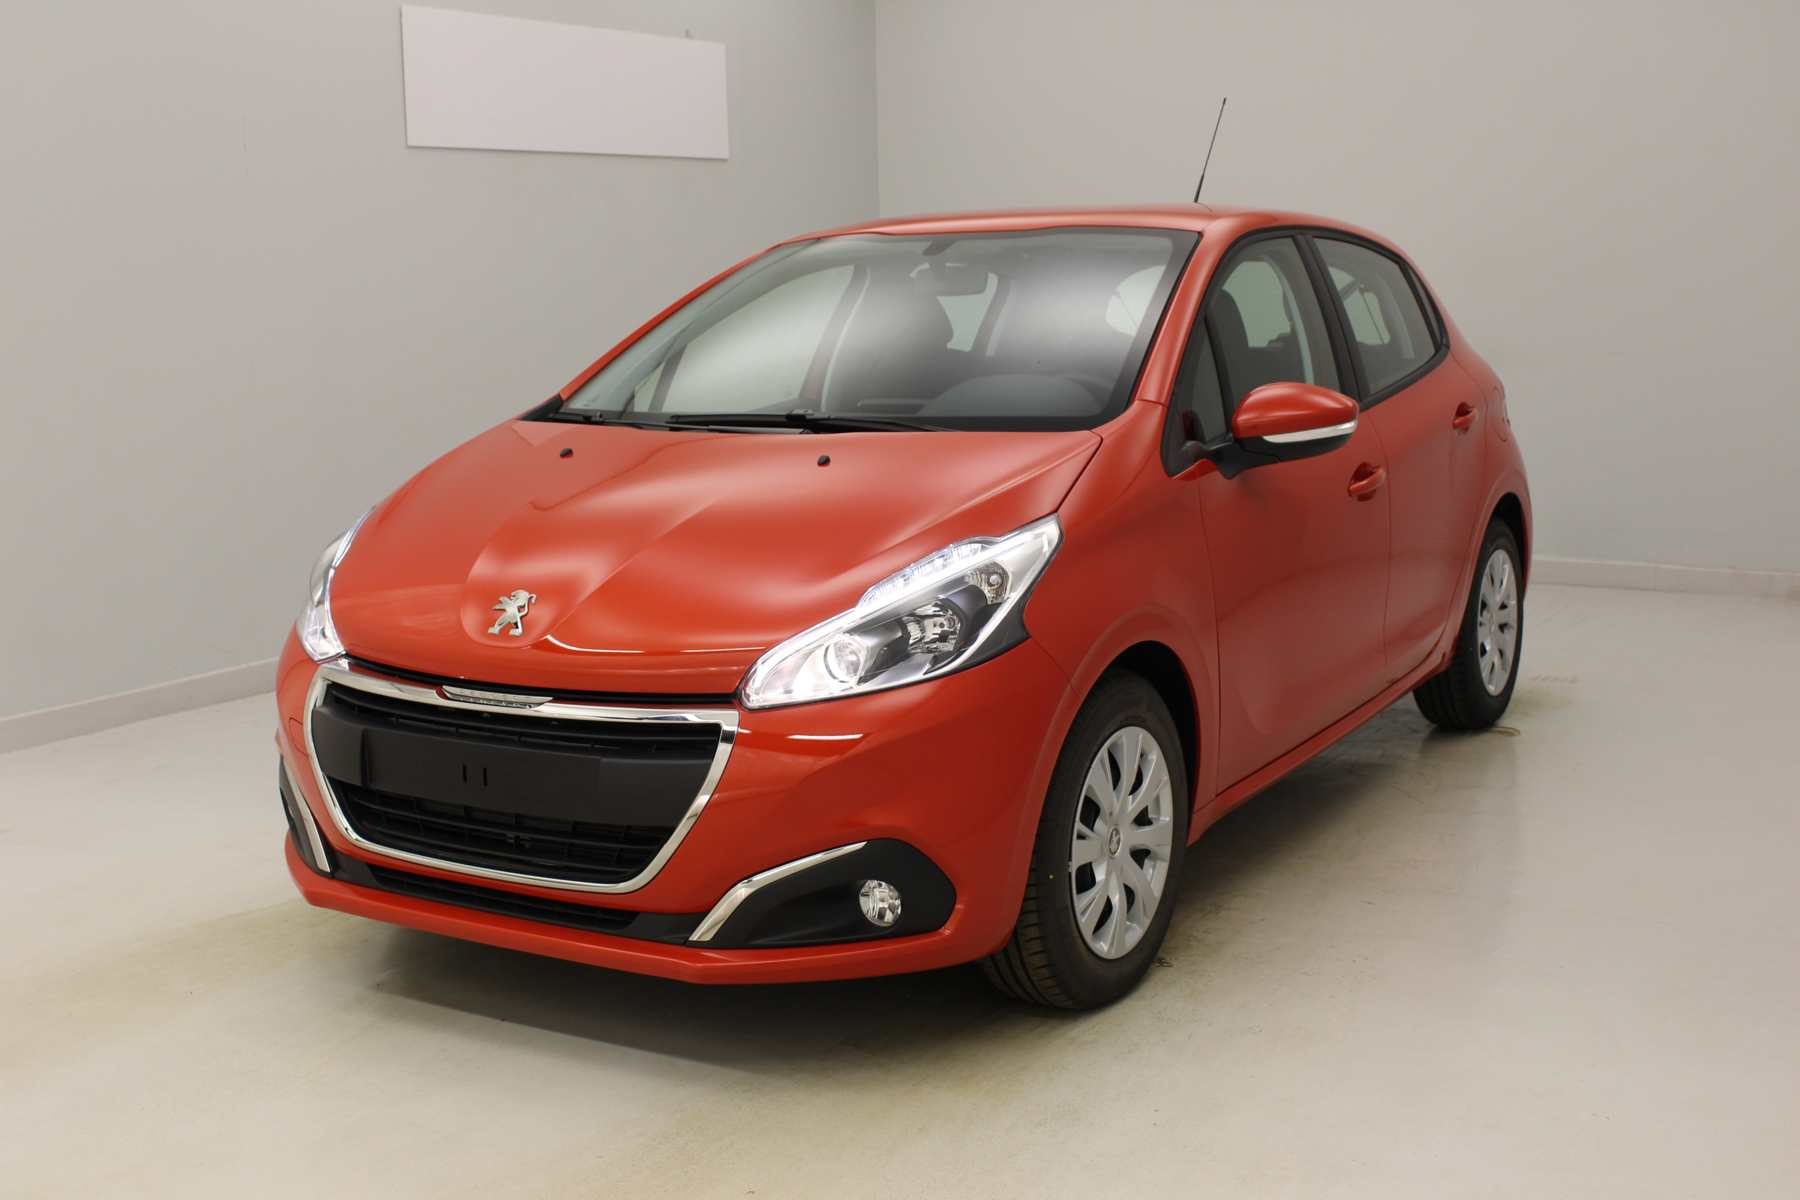 PEUGEOT 208 1.2 PureTech 82ch BVM5 Allure Orange Power + Navigation + Roue de secours + Extension de garantie 3 ans avec options